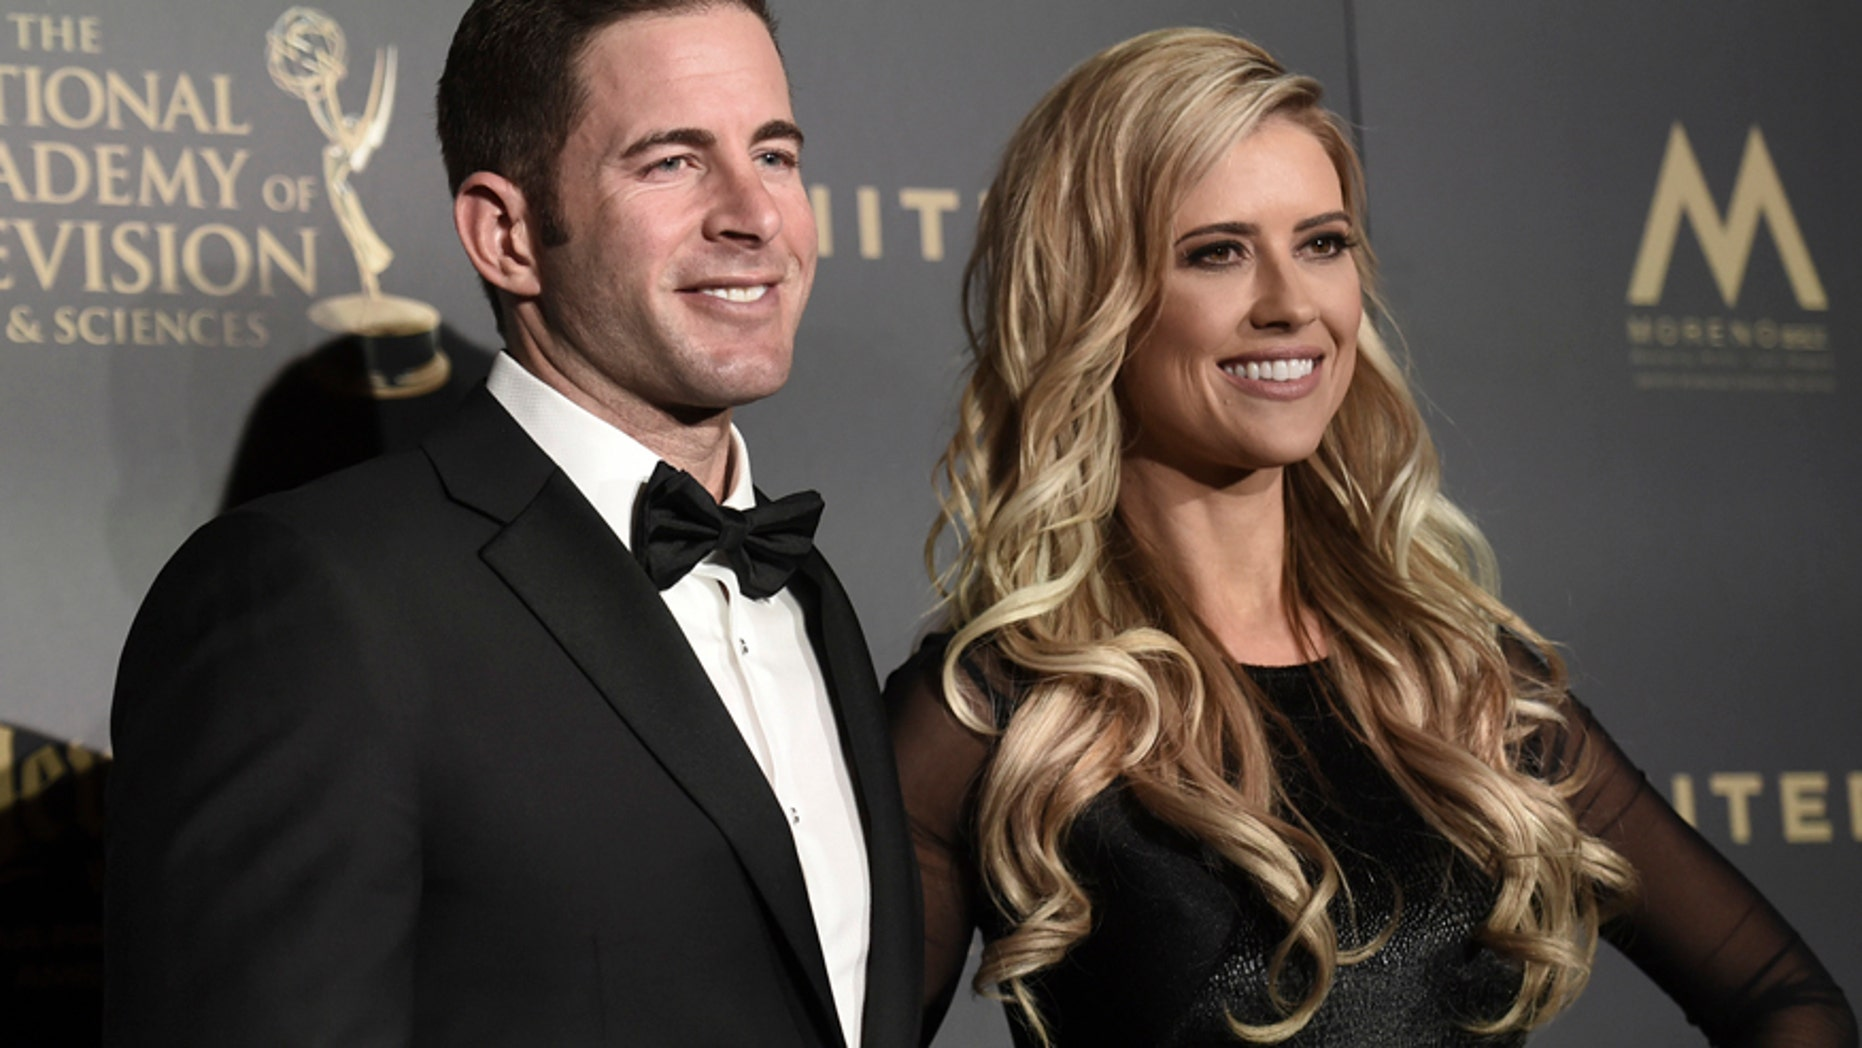 Flip or Flop's' Christina and Tarek El Moussa engage in social media